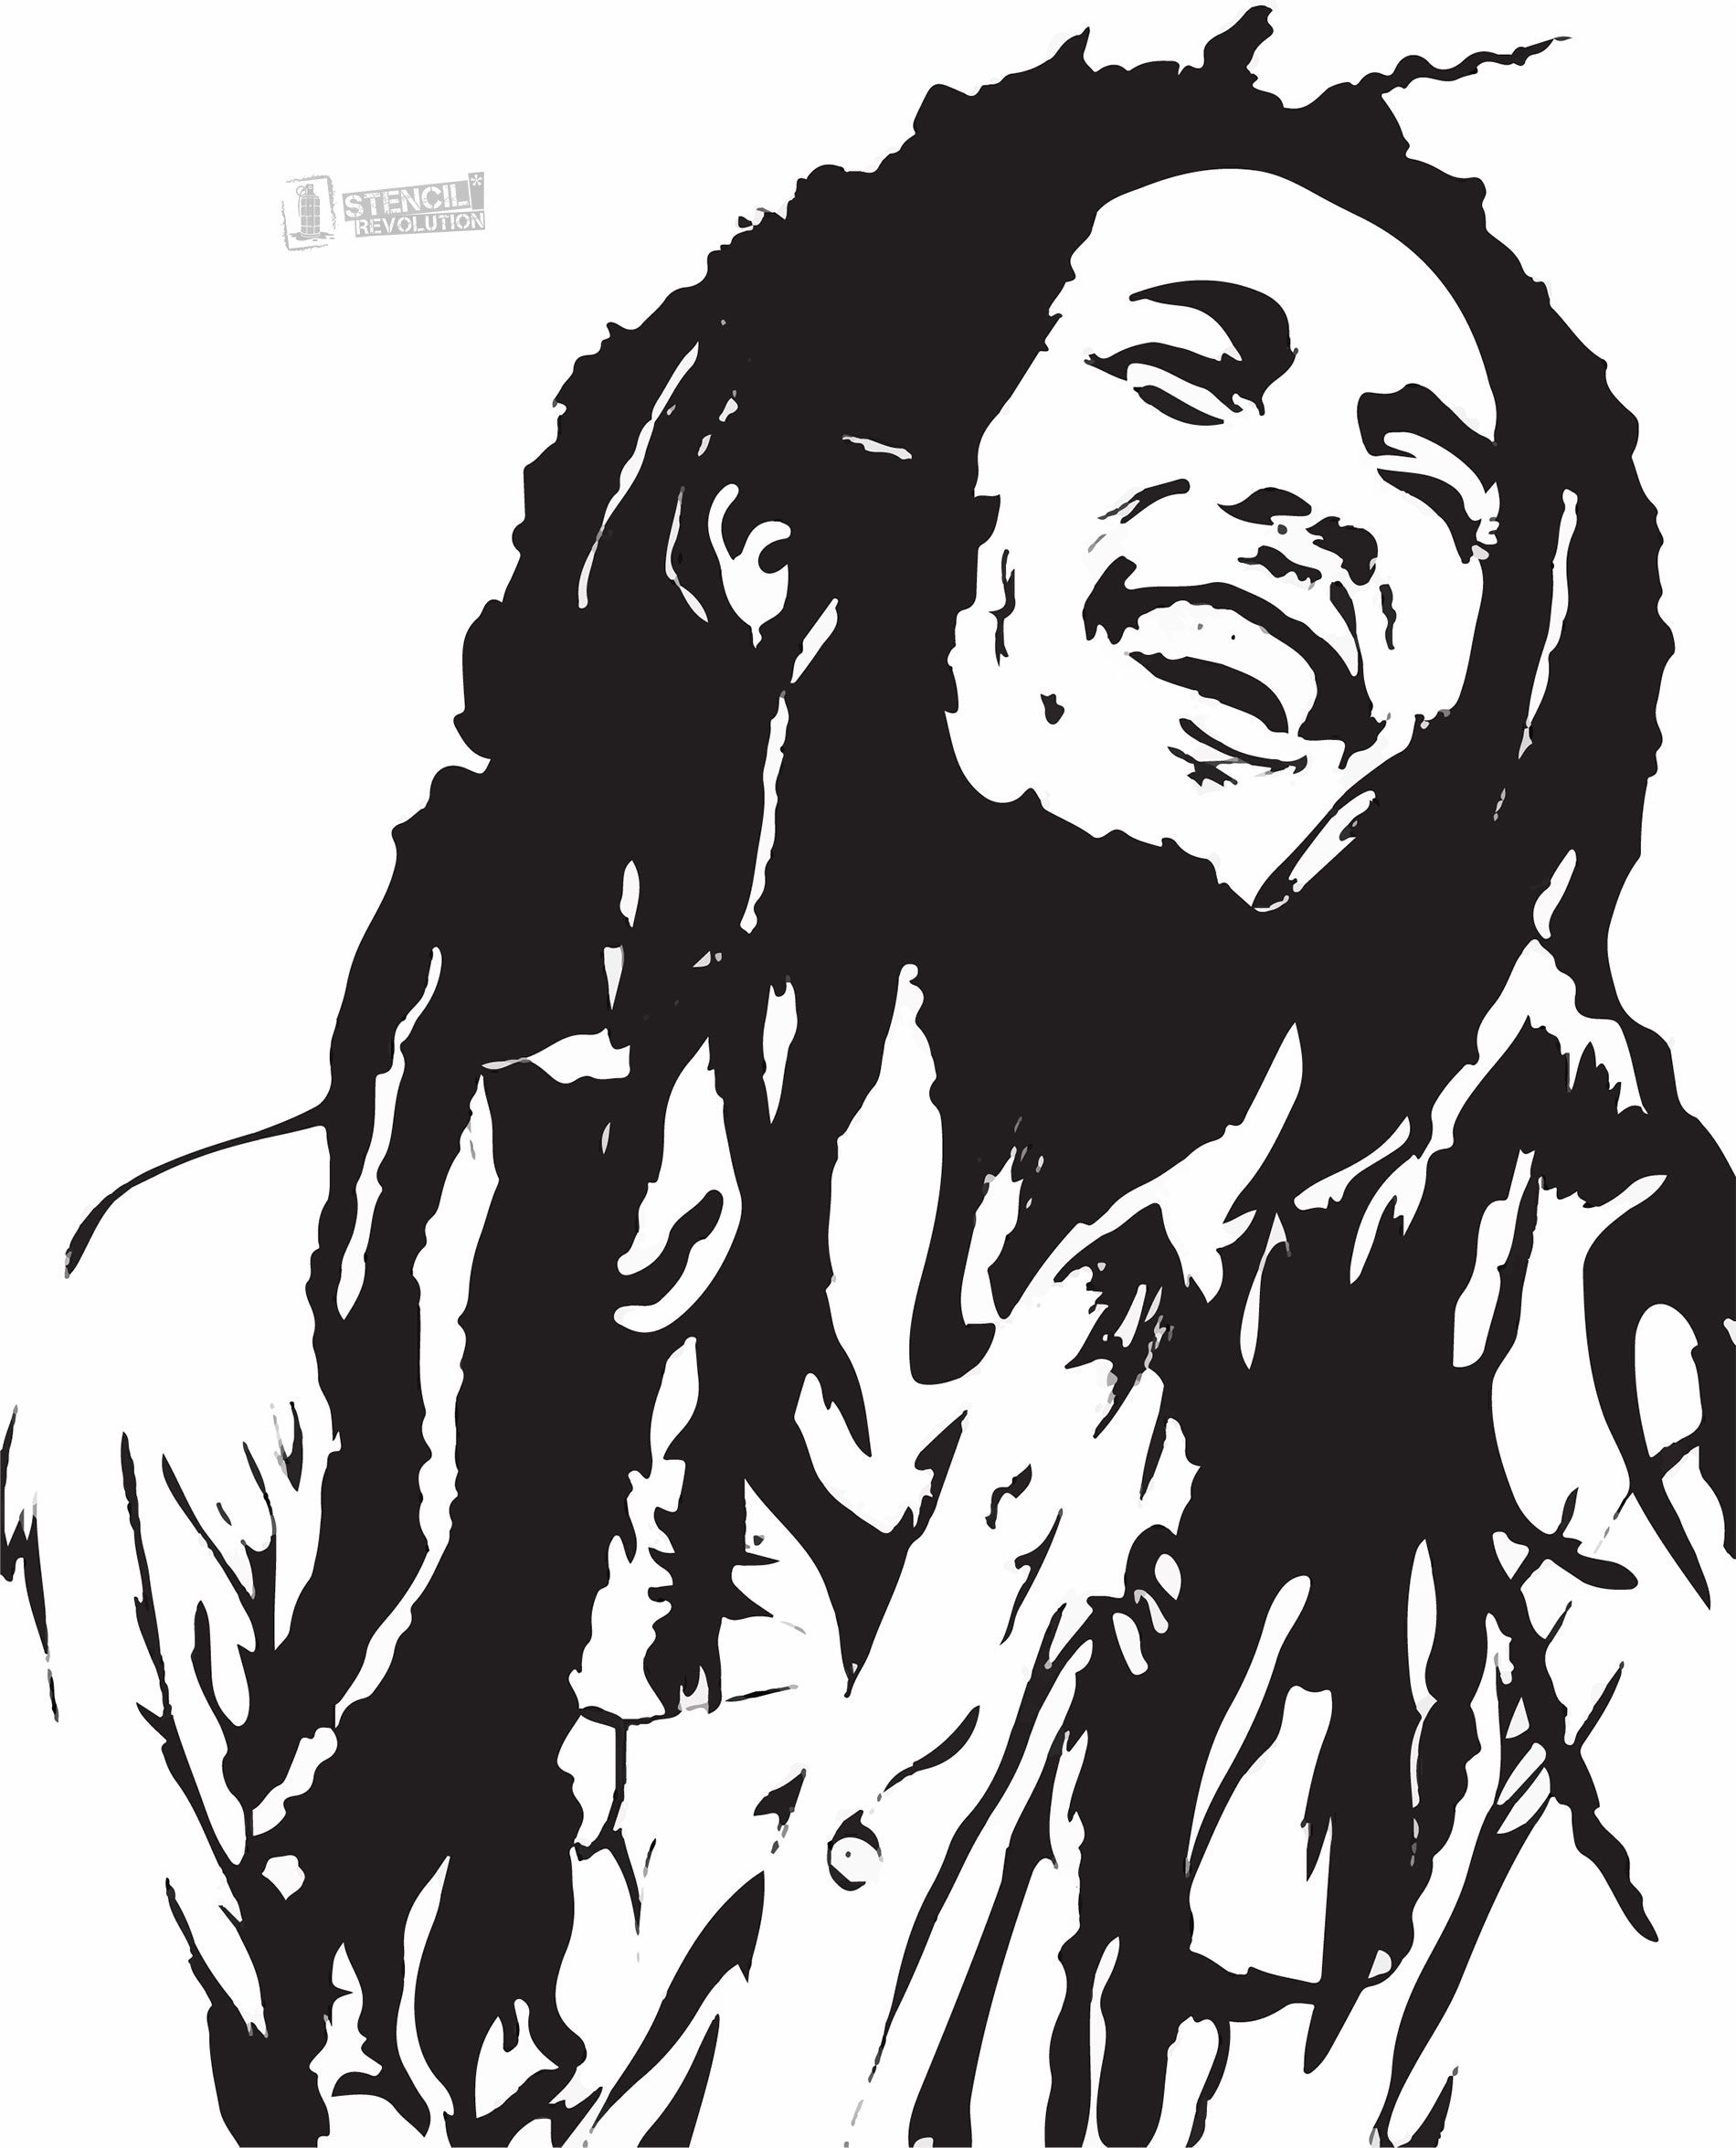 The Highest Quality Stencils At The Best Prices Bob Marley Art Bob Marley Tattoo Black And White Drawing